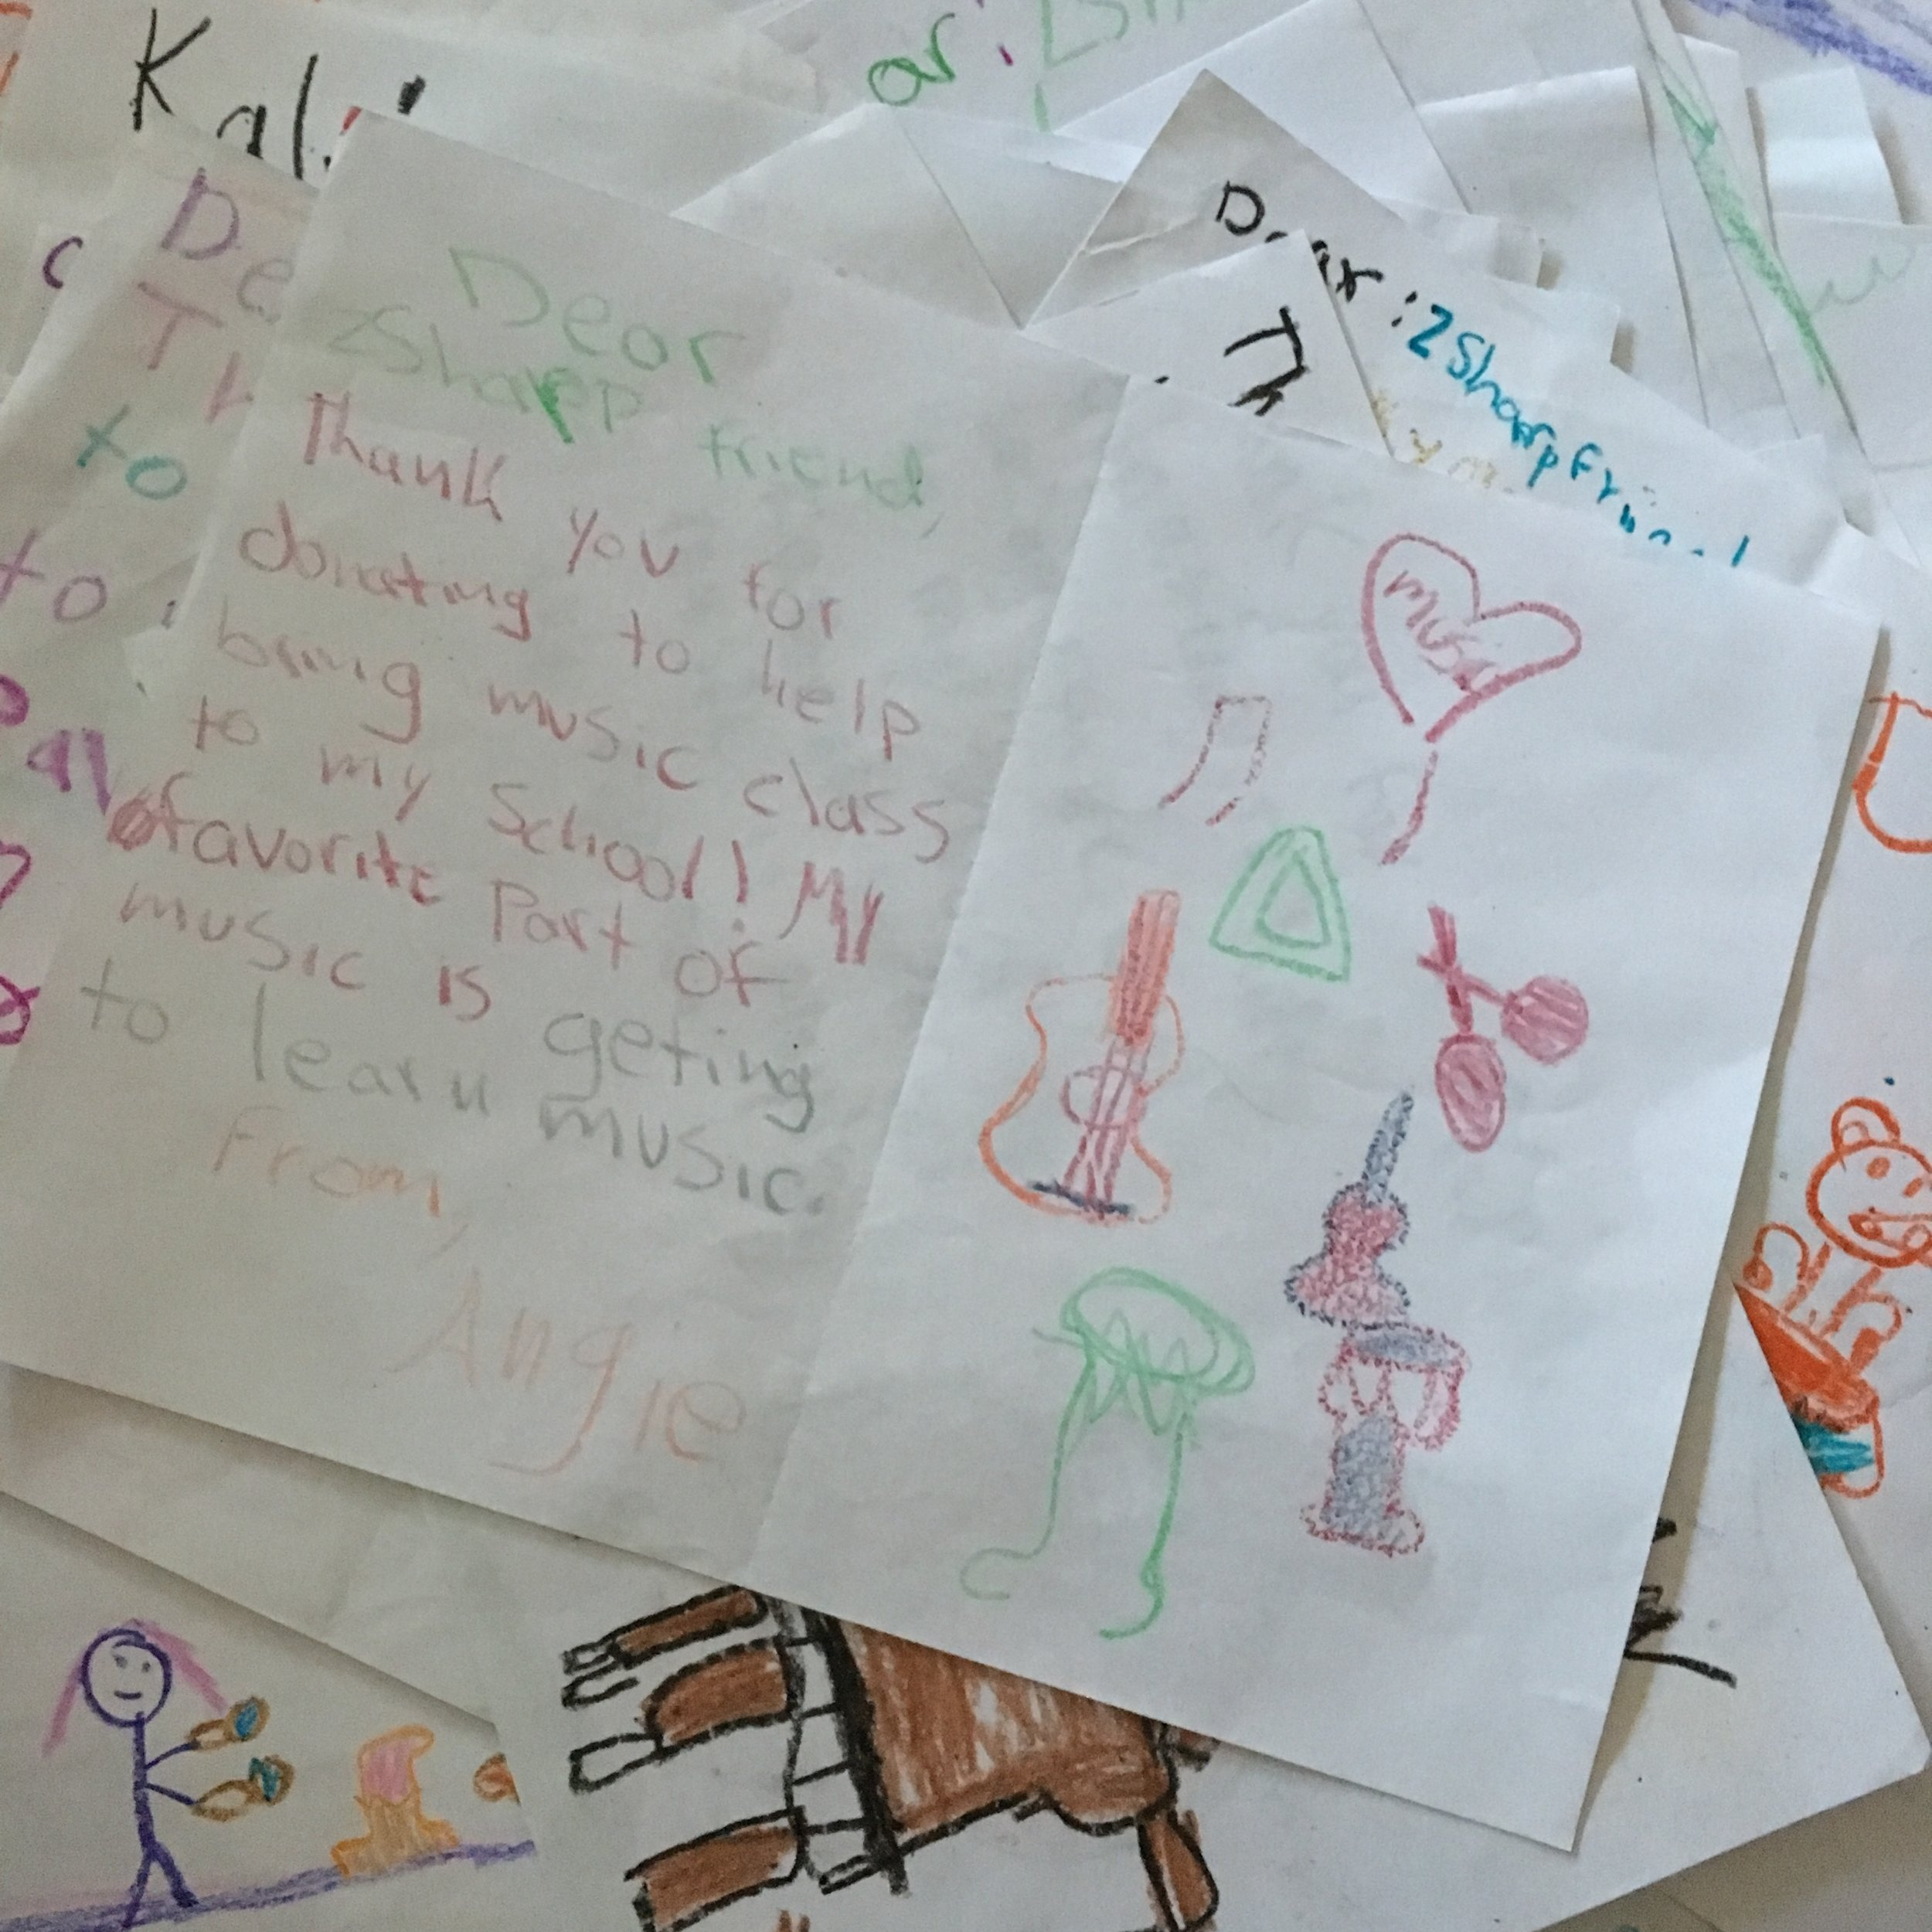 Student letters to teachers and supporters